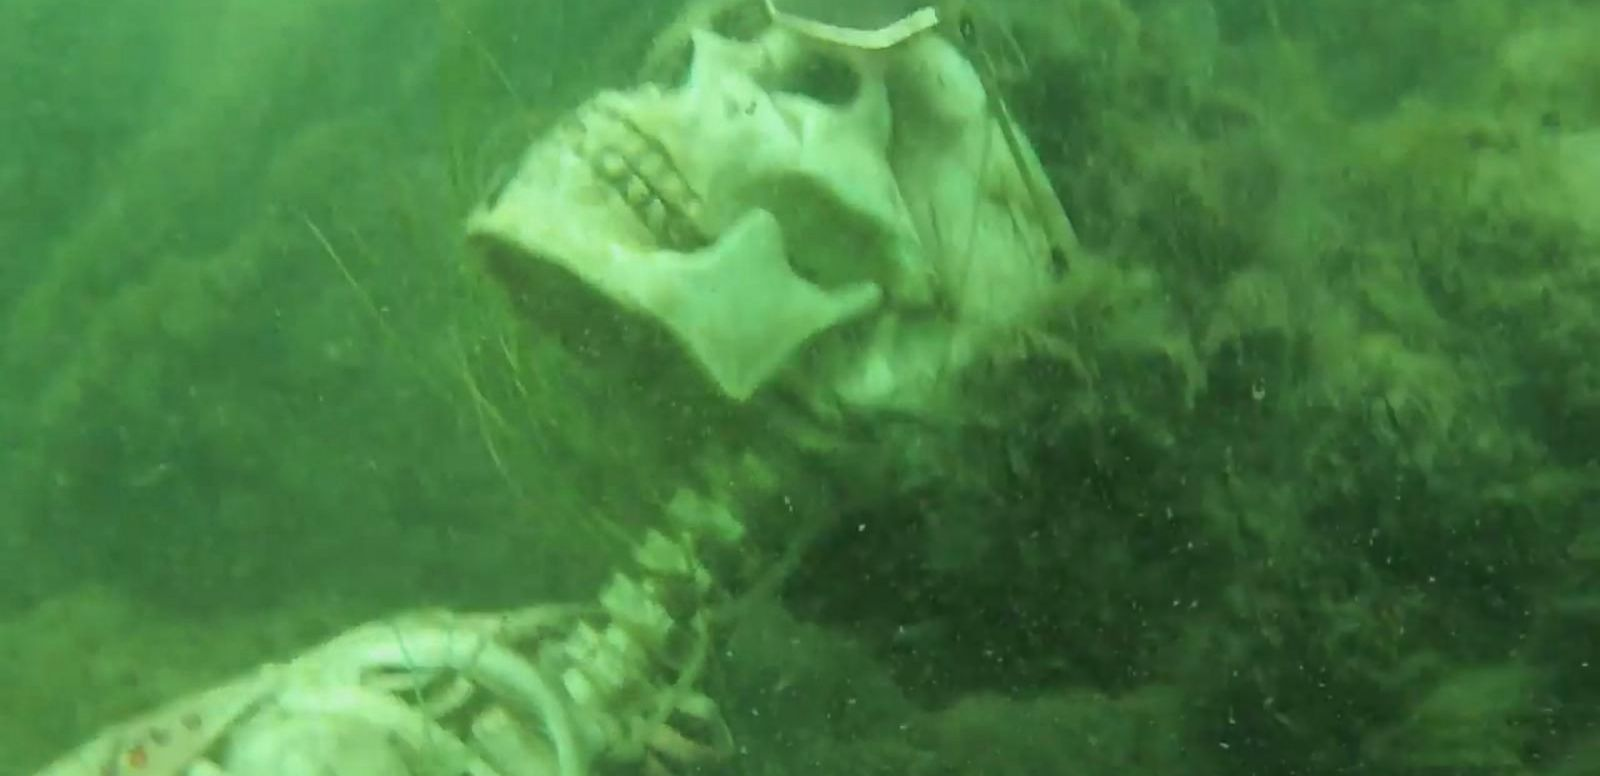 VIDEO: A snorkeler on the Arizona-California border called authorities after discovering what he thought were human skeletons sitting in lawn chairs.